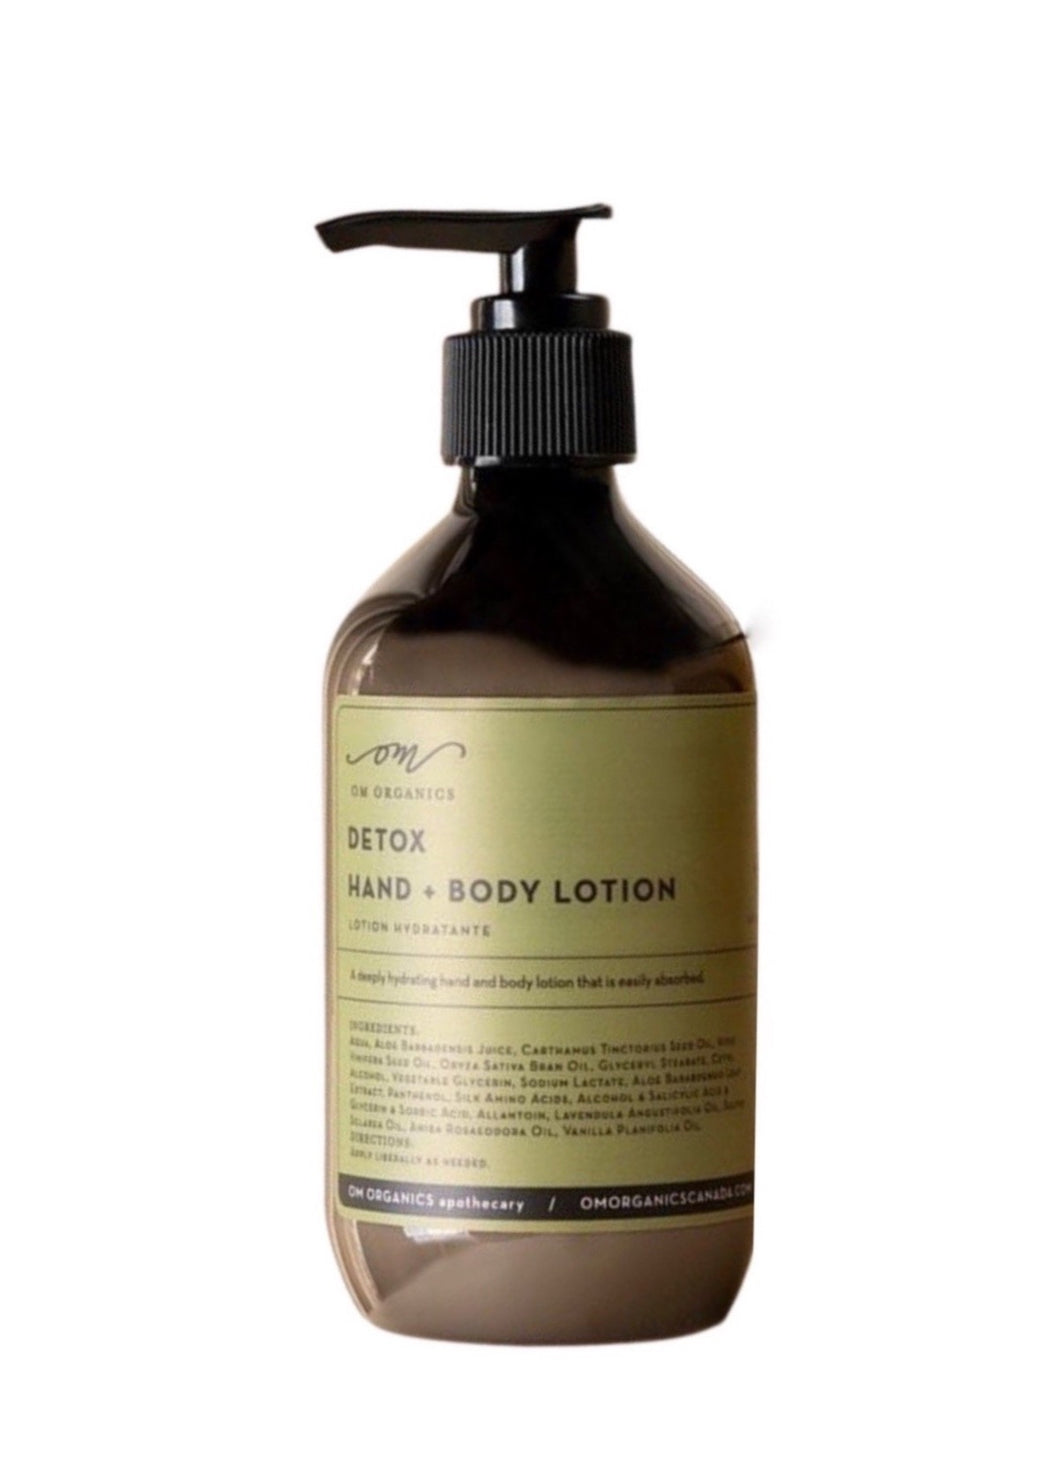 Detox Hand + Body Lotion